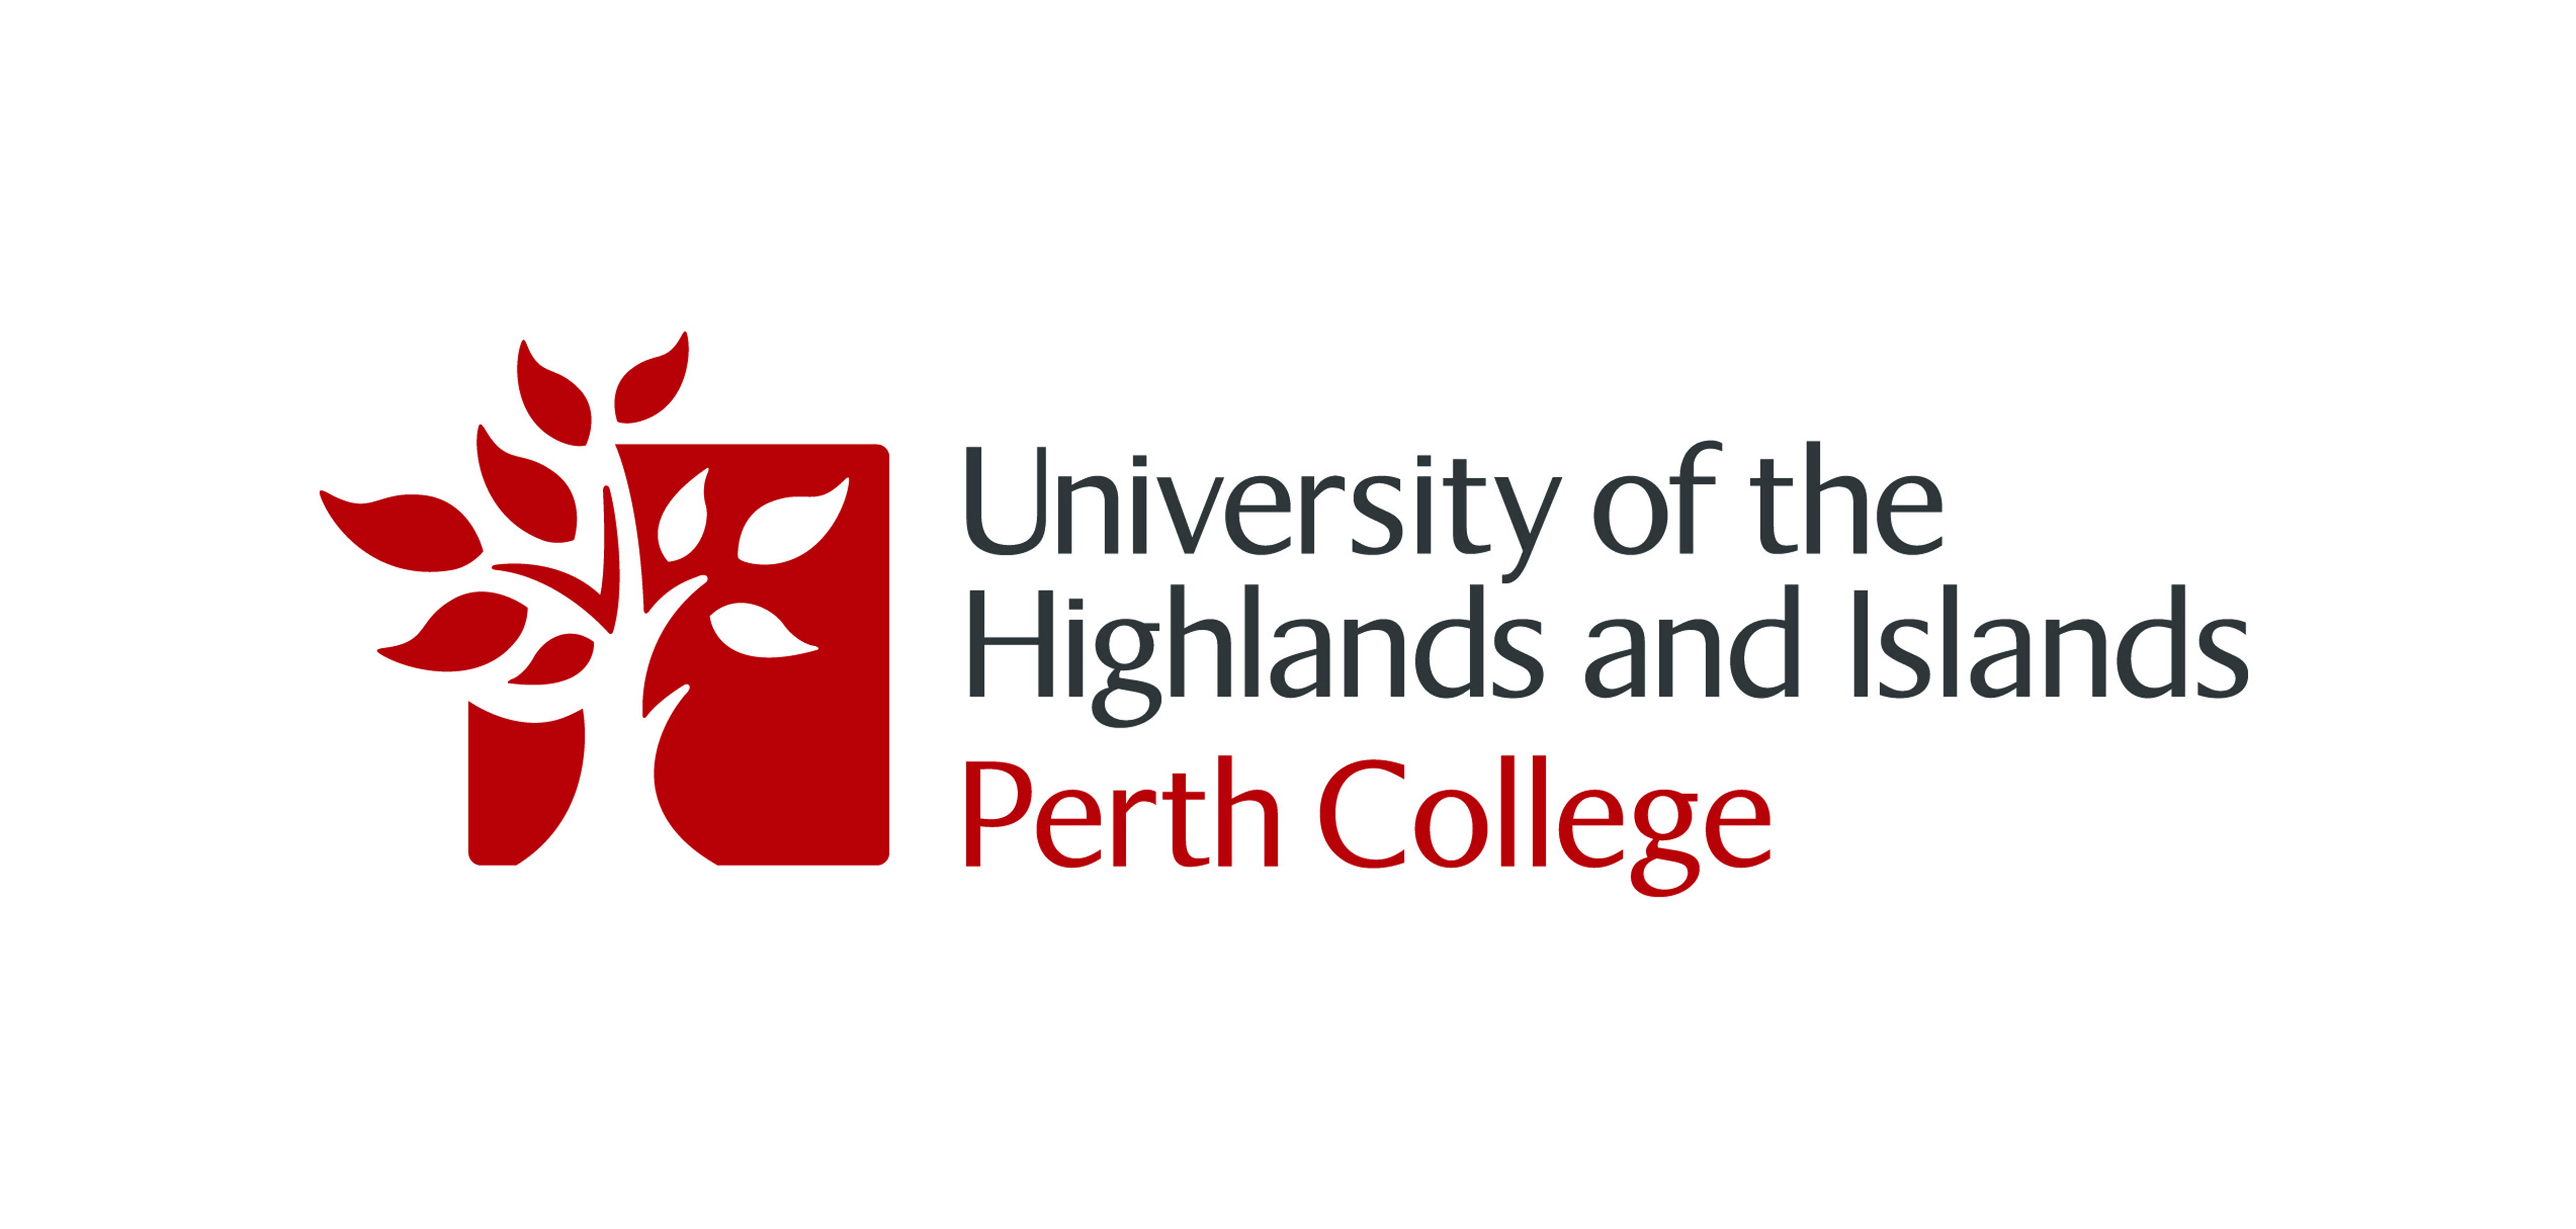 Visit Perth College website